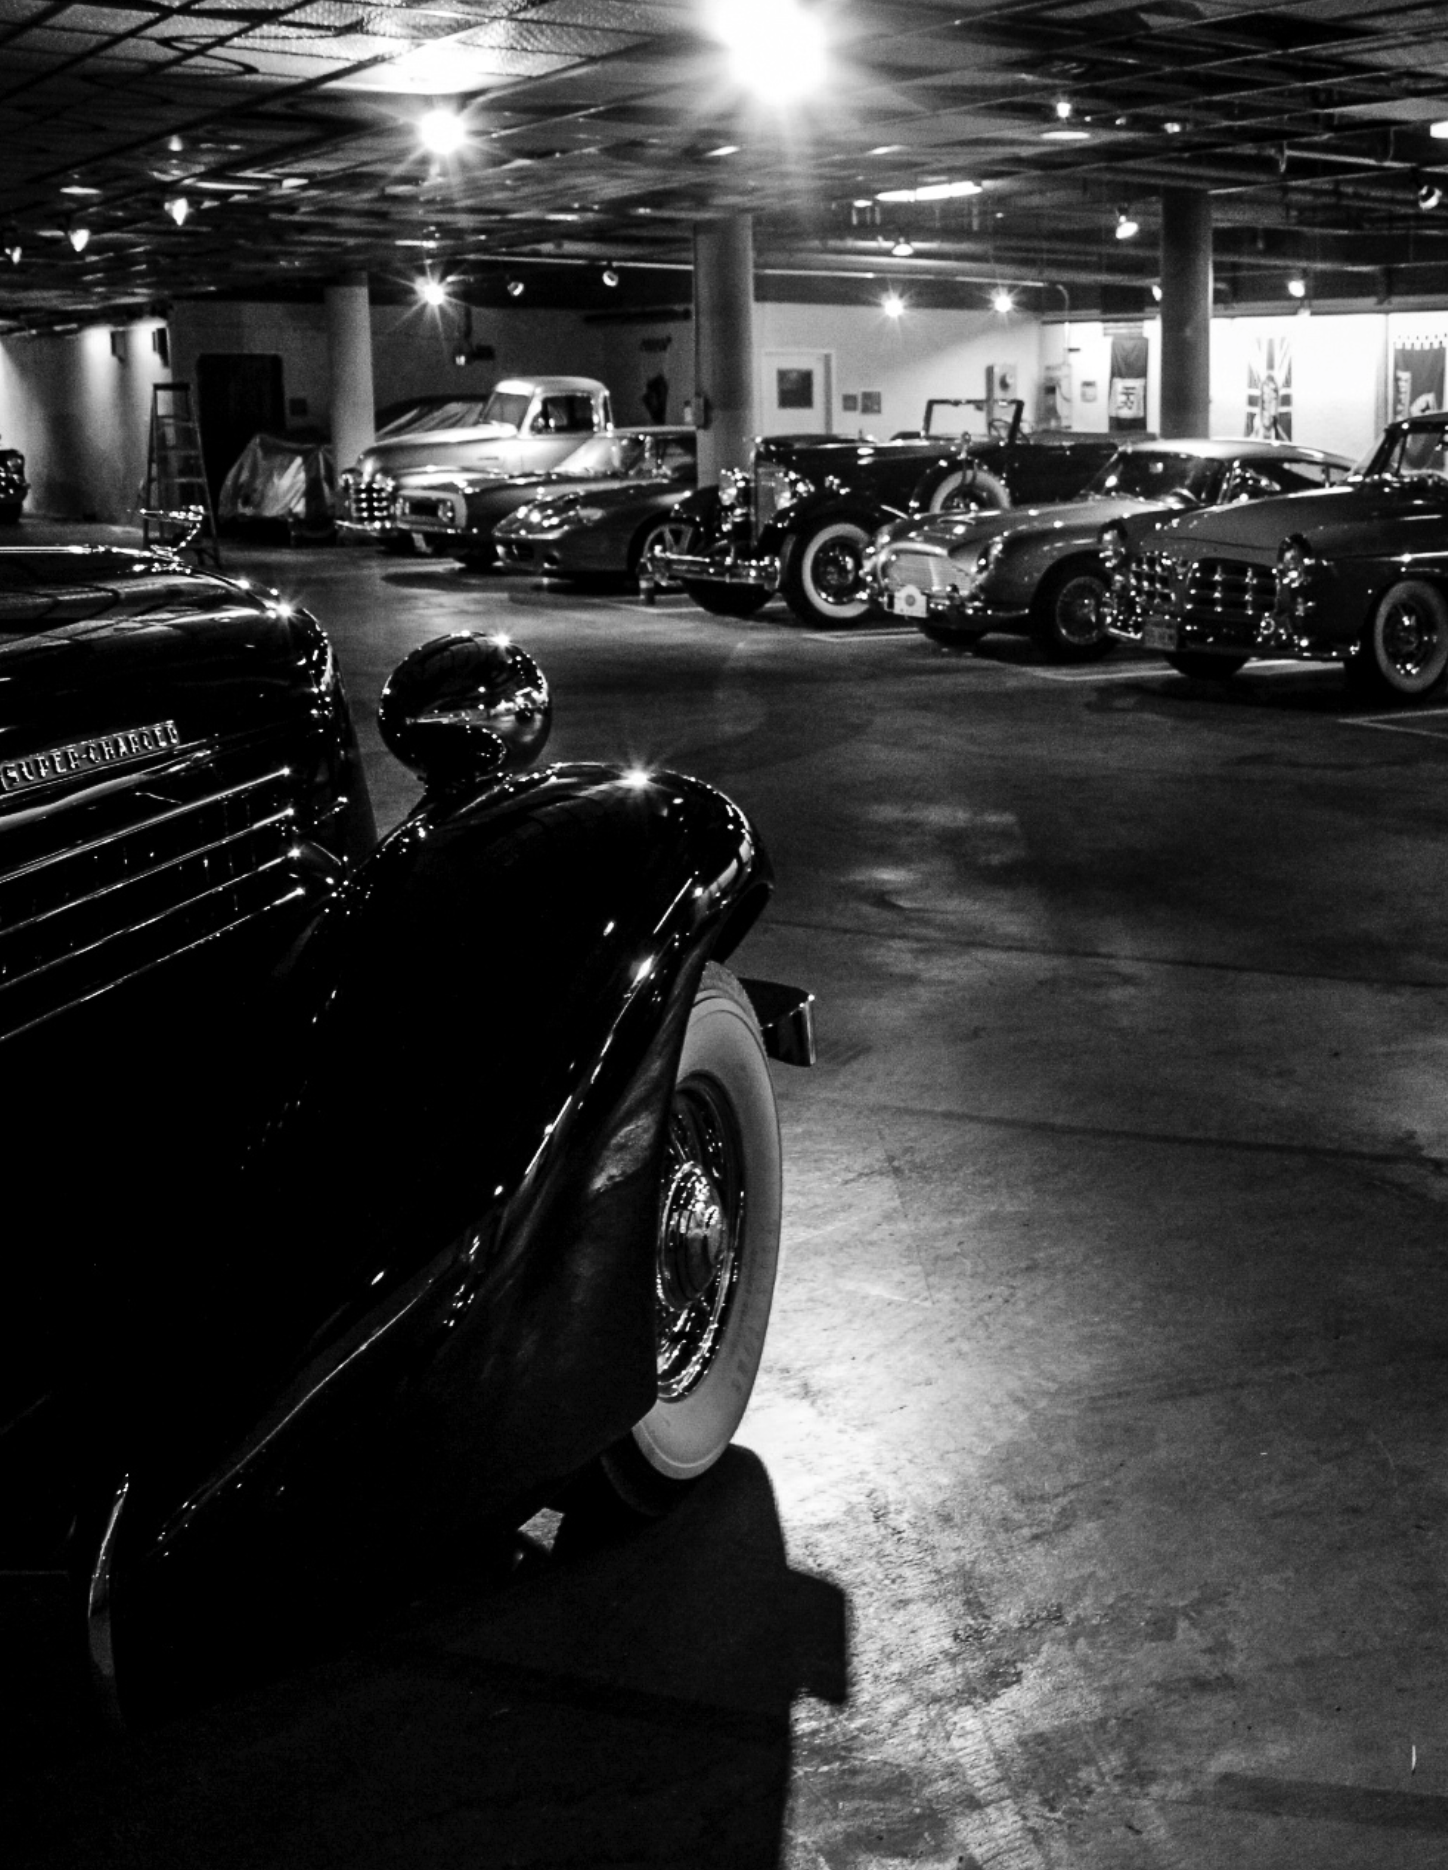 """Welcome to the SafeHaüsClassic & Exotic Automobile Storage - Our discreet state of the art facility is conveniently located in the heart of West Los Angeles. We provide a private climate-controlled gated facility with 24-hour security guards & motion activated video surveillance. Concierge Services offered: Battery tenders, car covers, wash & detail on site, transportation, car show prep, pick-up & delivery as well as sales & leasing. Customers also have access to the """"SafeRoom"""", a lounge with all the amenities to work, relax, or entertain.Webb Farrer has been in the Automotive industry for more than 37 years showing, restoring, cleaning, storing and selling Classic and Luxury Vehicles."""